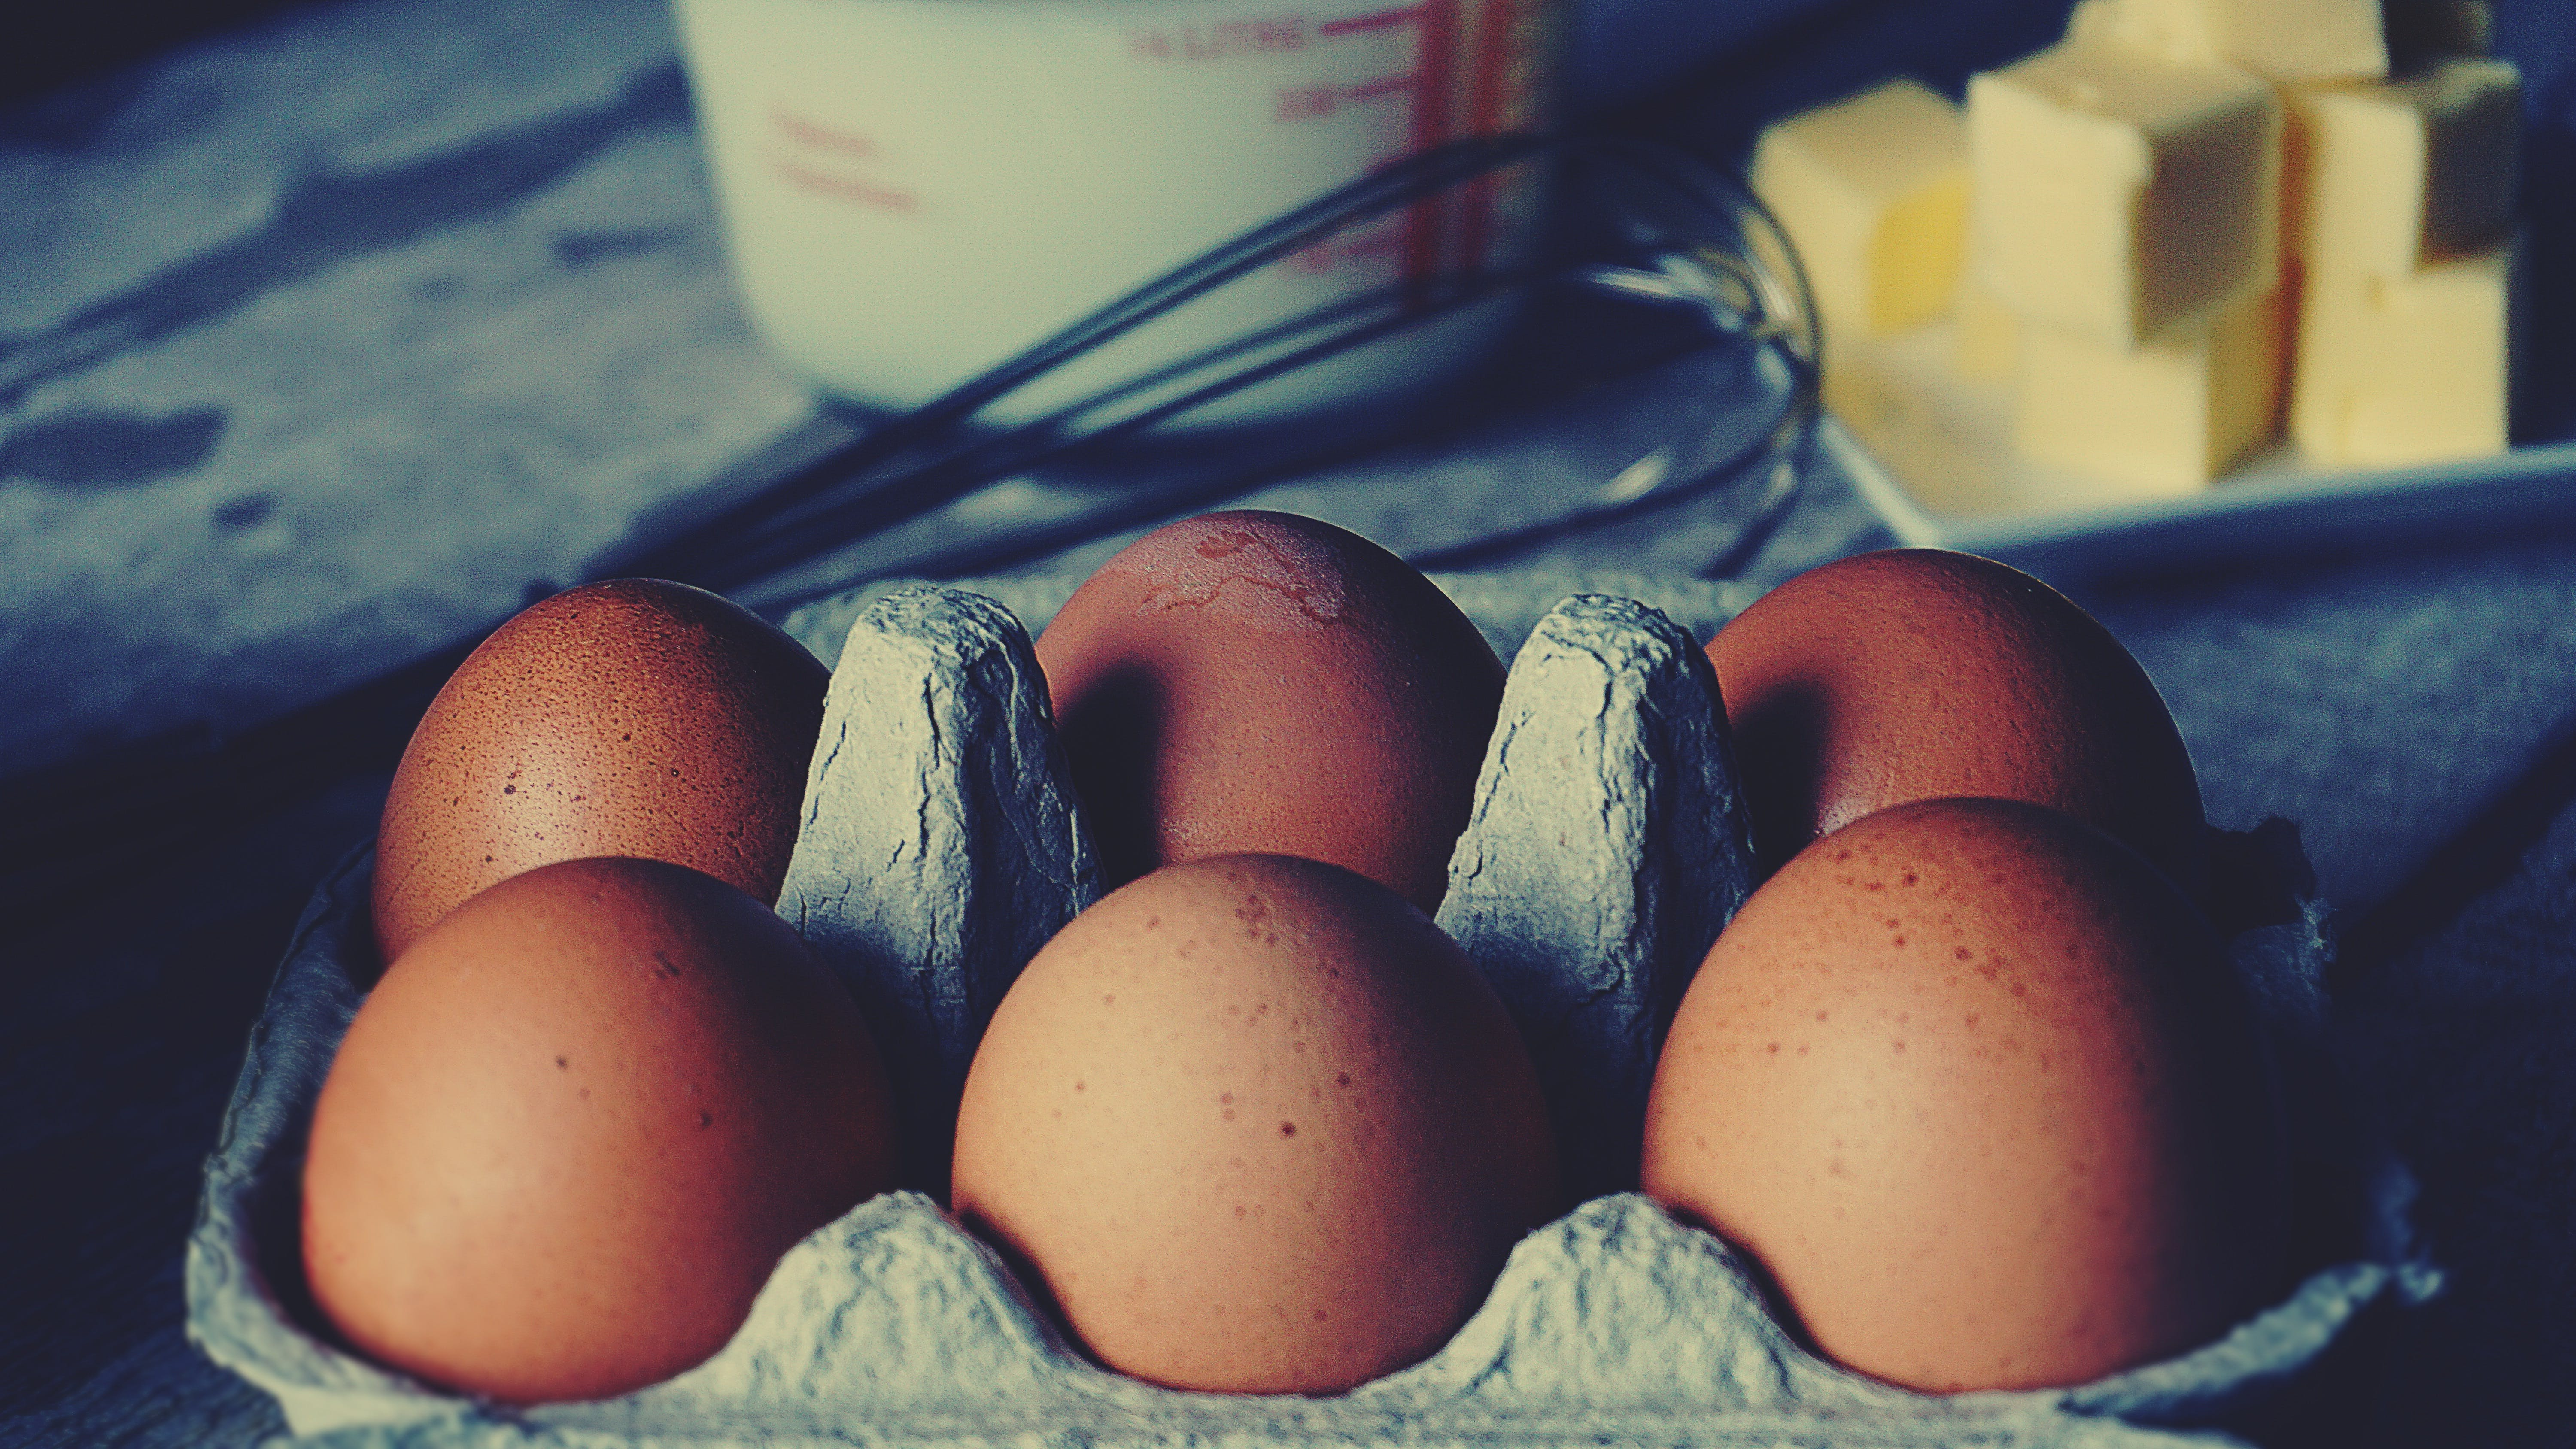 Free stock photo of food, kitchen, eggs, cooking